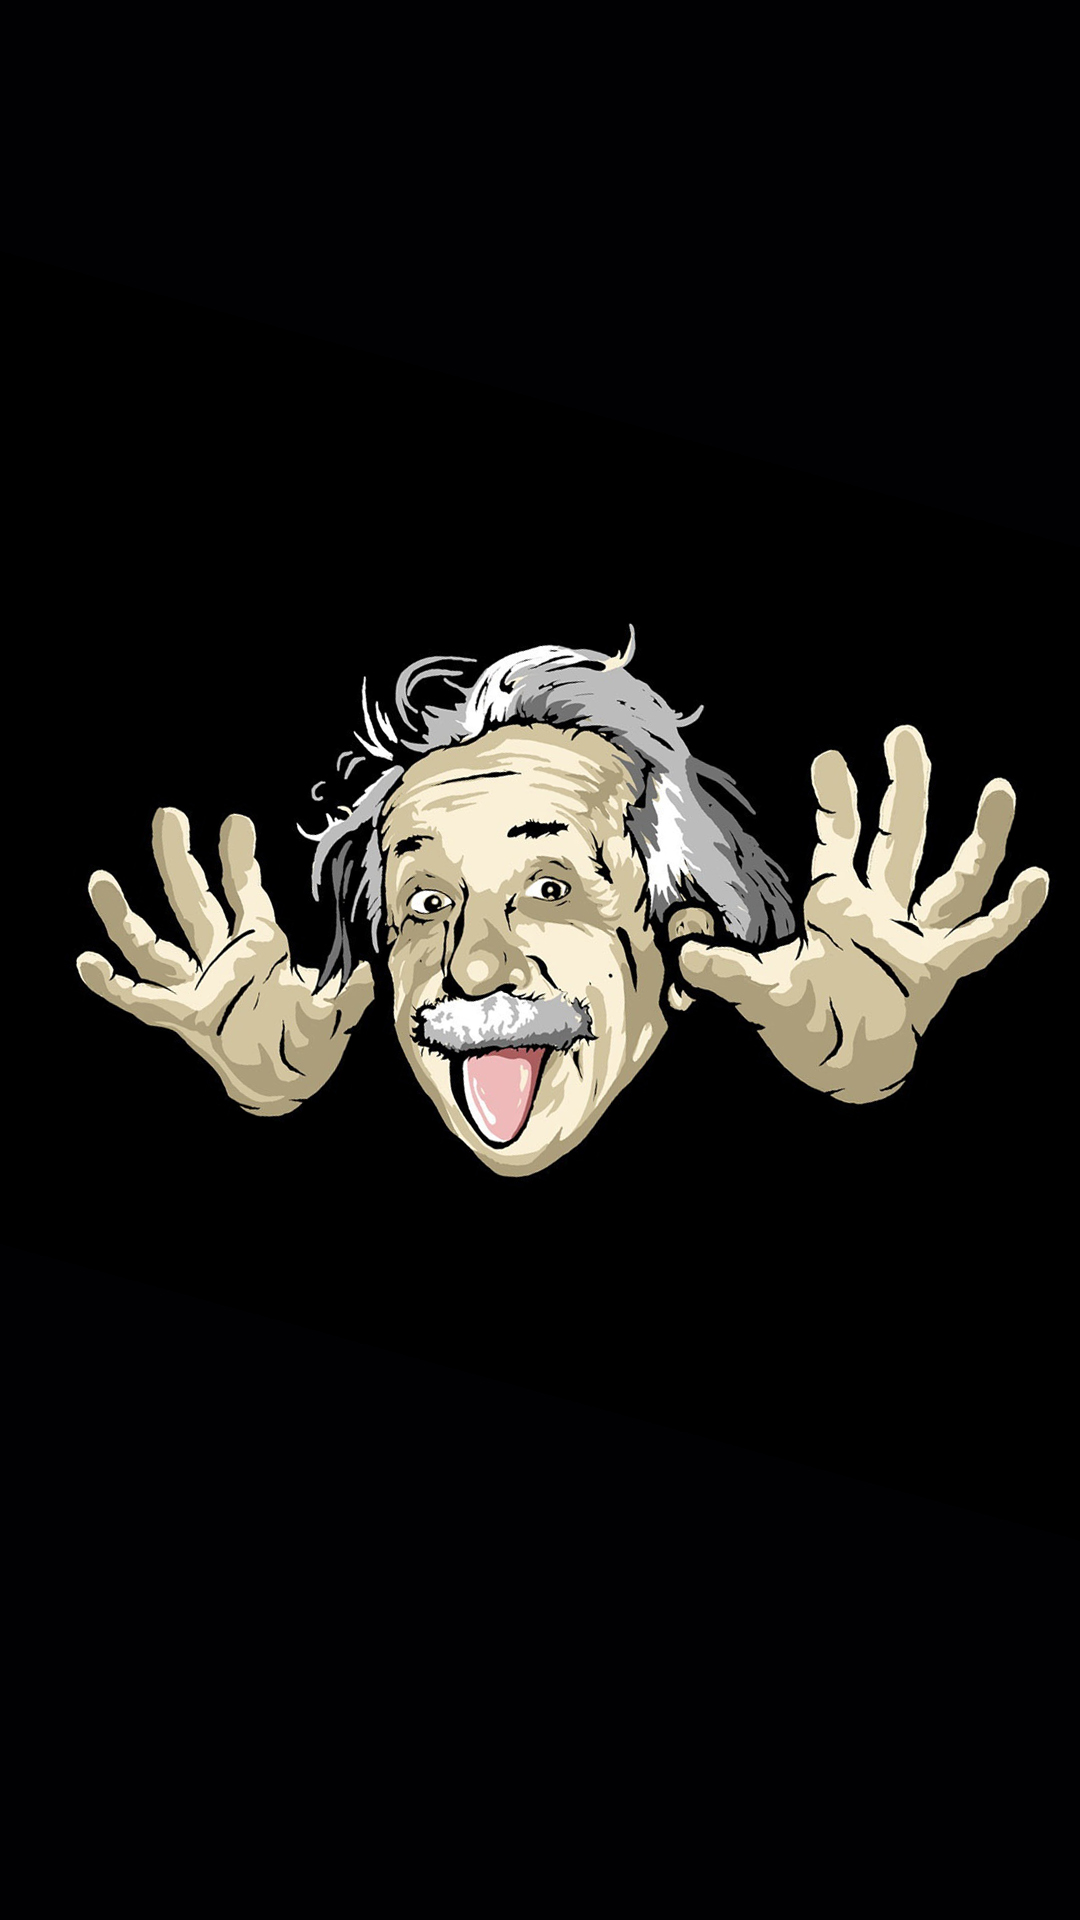 Albert Einstein Cartoon Wallpaper